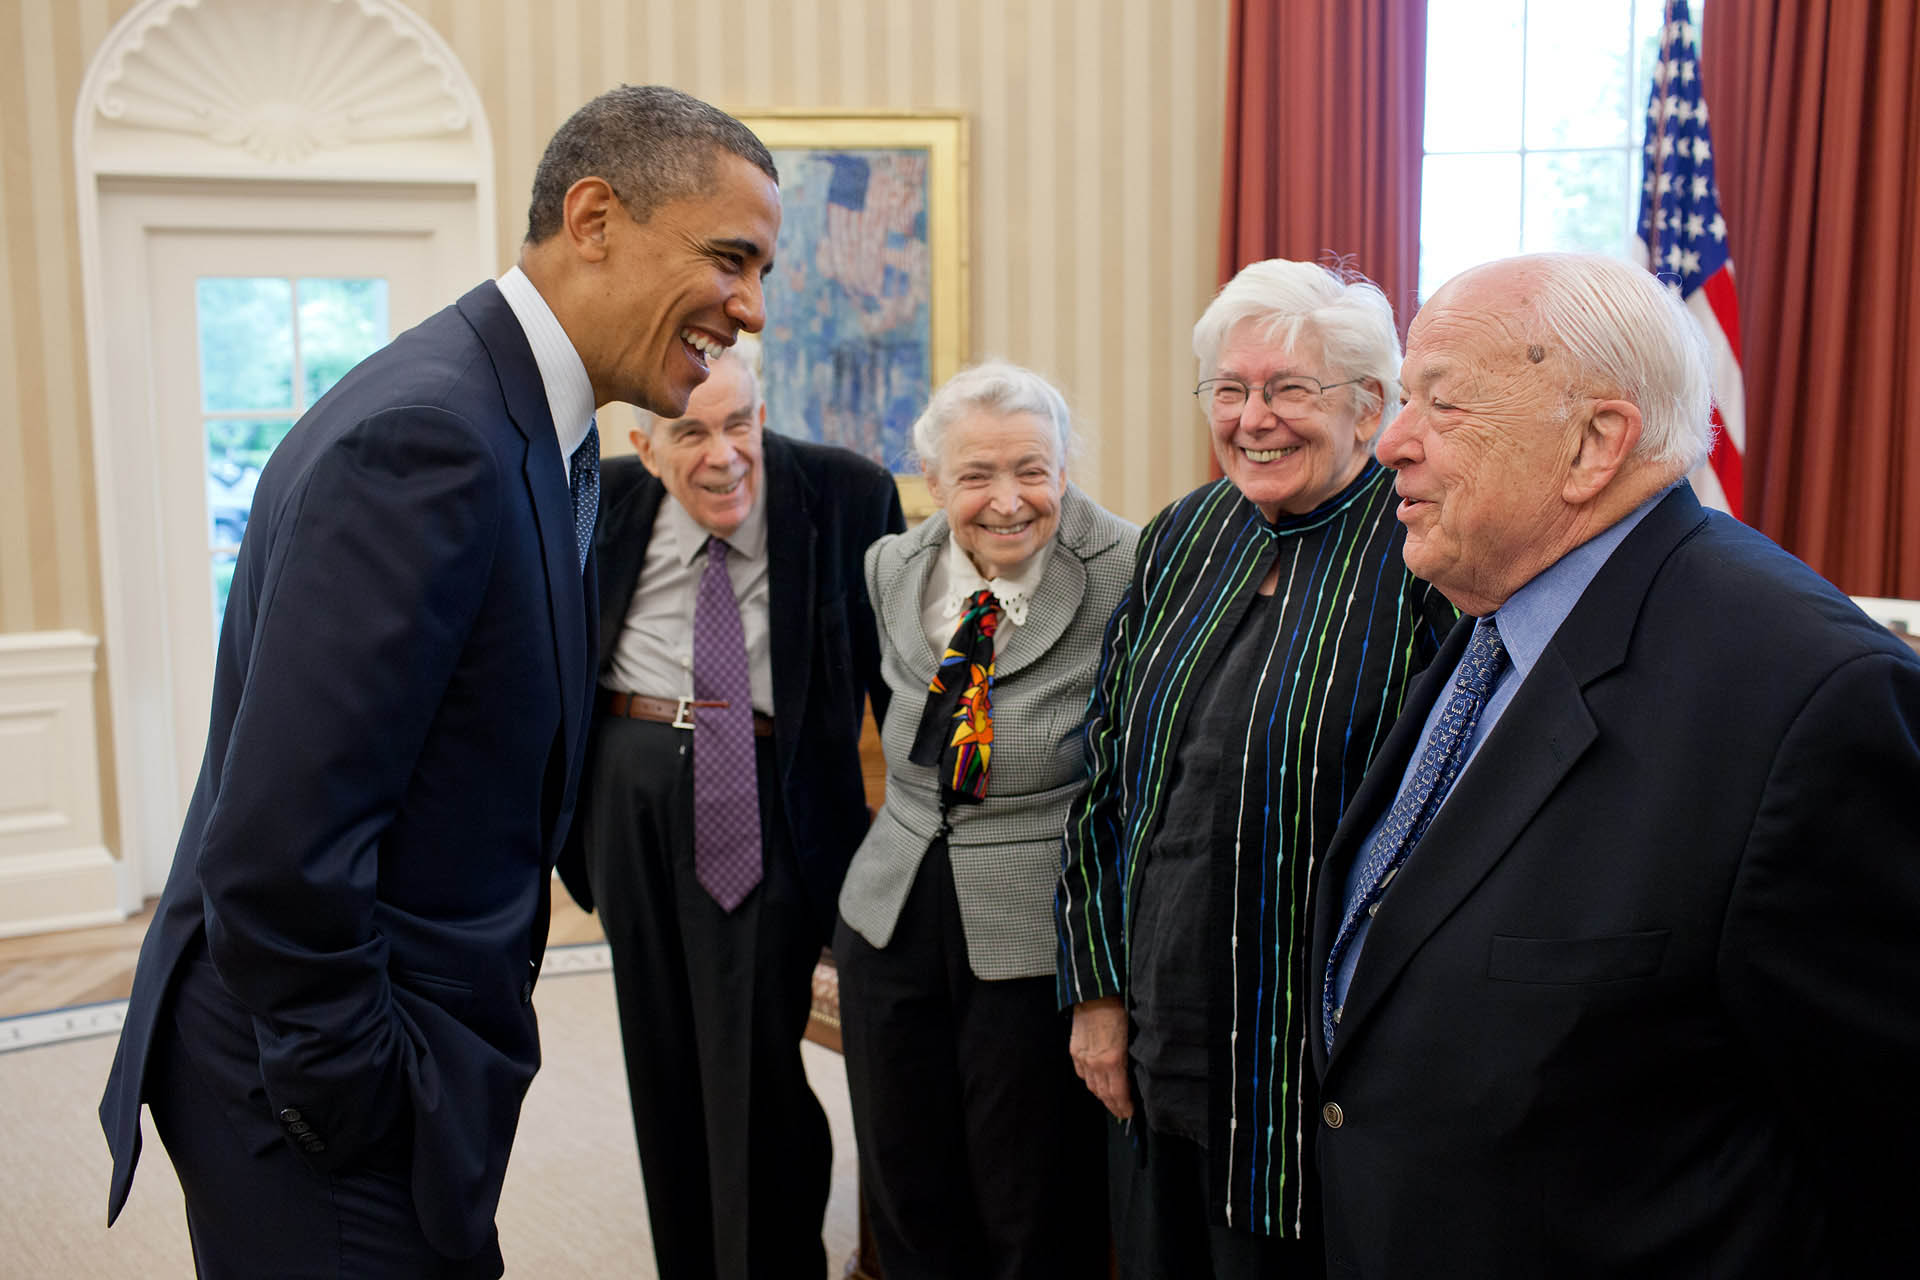 President Obama Greets 2010 Fermi Award Recipients